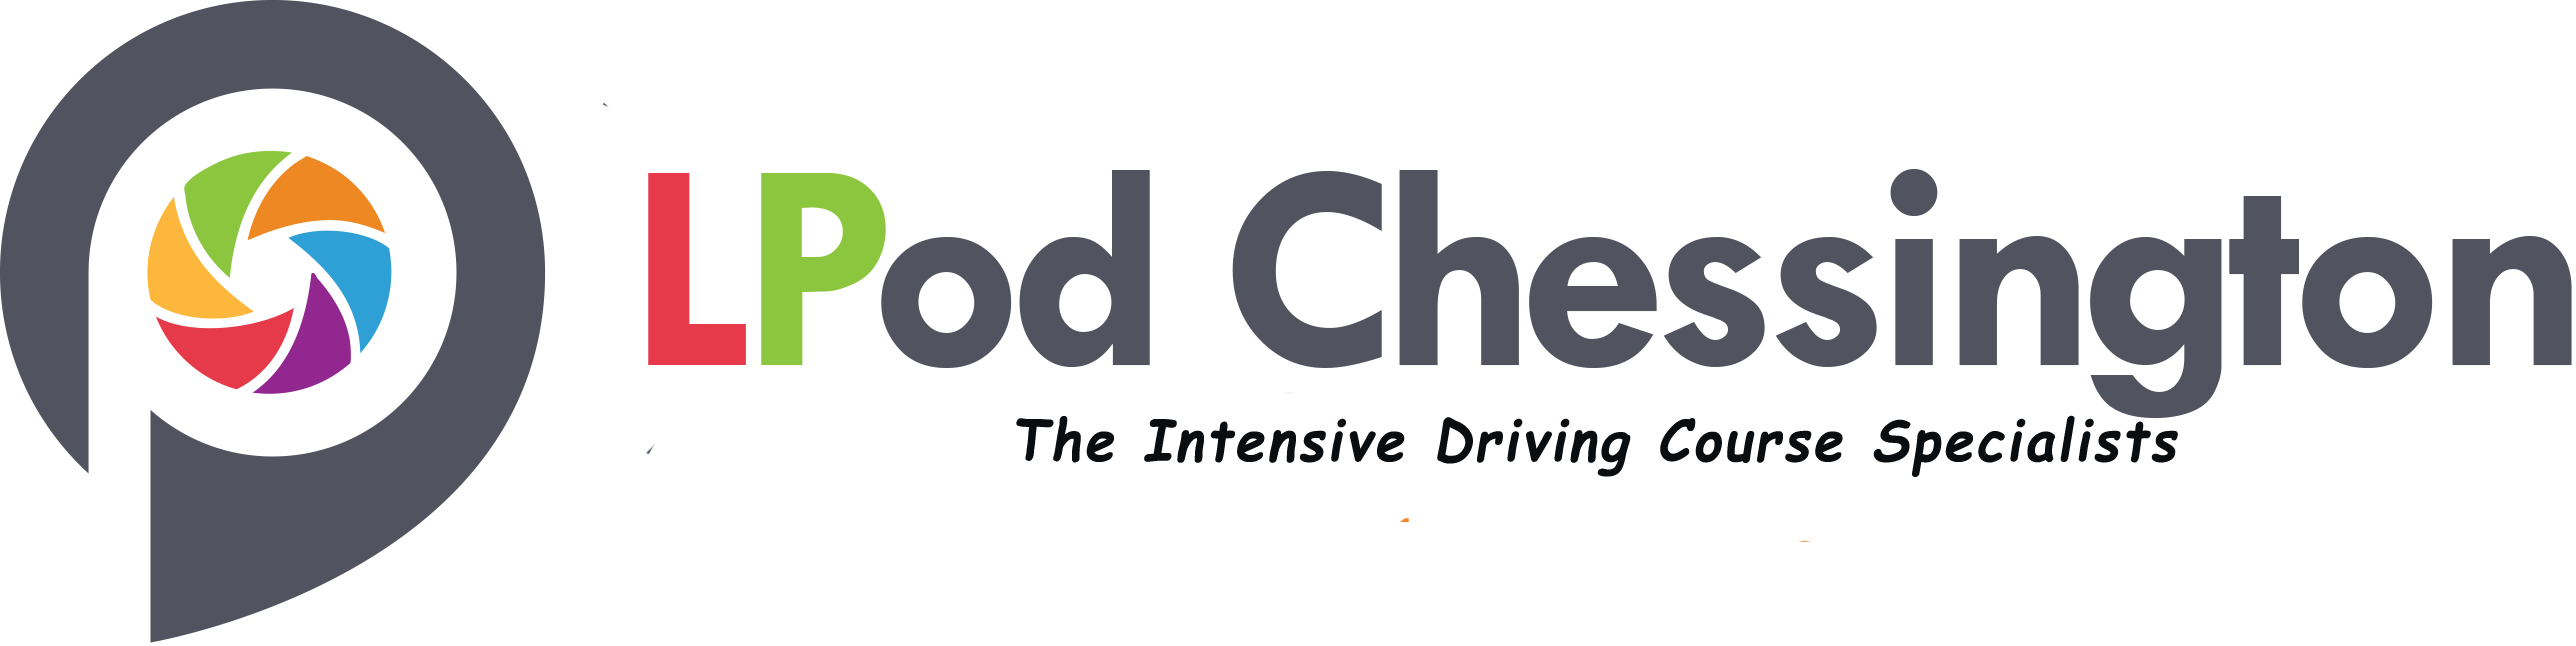 intensive driving courses chessington, intensive driving school chessington, intensive driving lessons chessington, one week driving course chessington, fast pass driving chessington, crash driving courses chessington, driving lessons chessington, automatic driving lessons chessington,